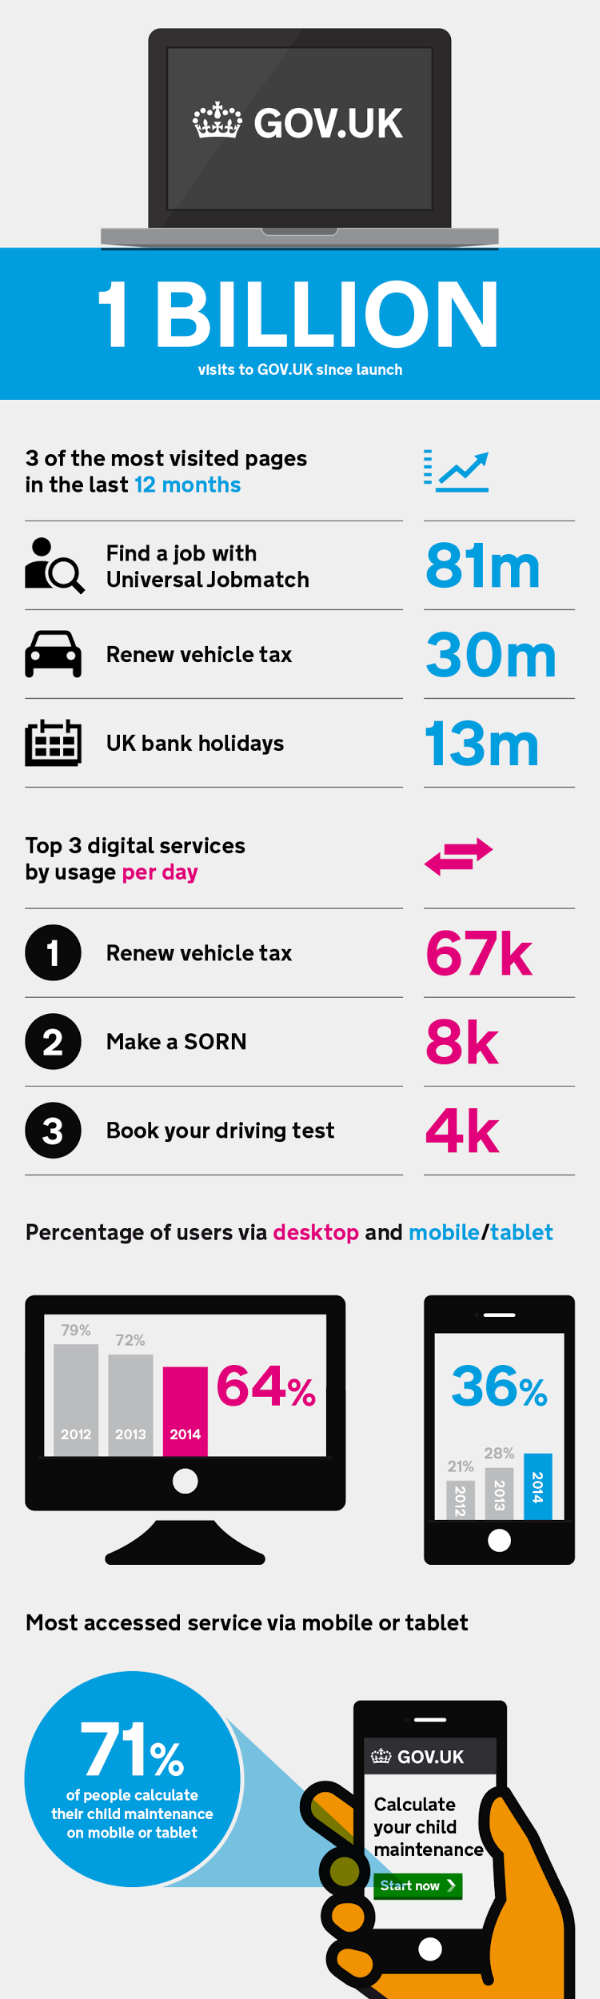 Infographic showing the breakdown of visits to various places across GOV.UK that made up the 1 billion visits since launch